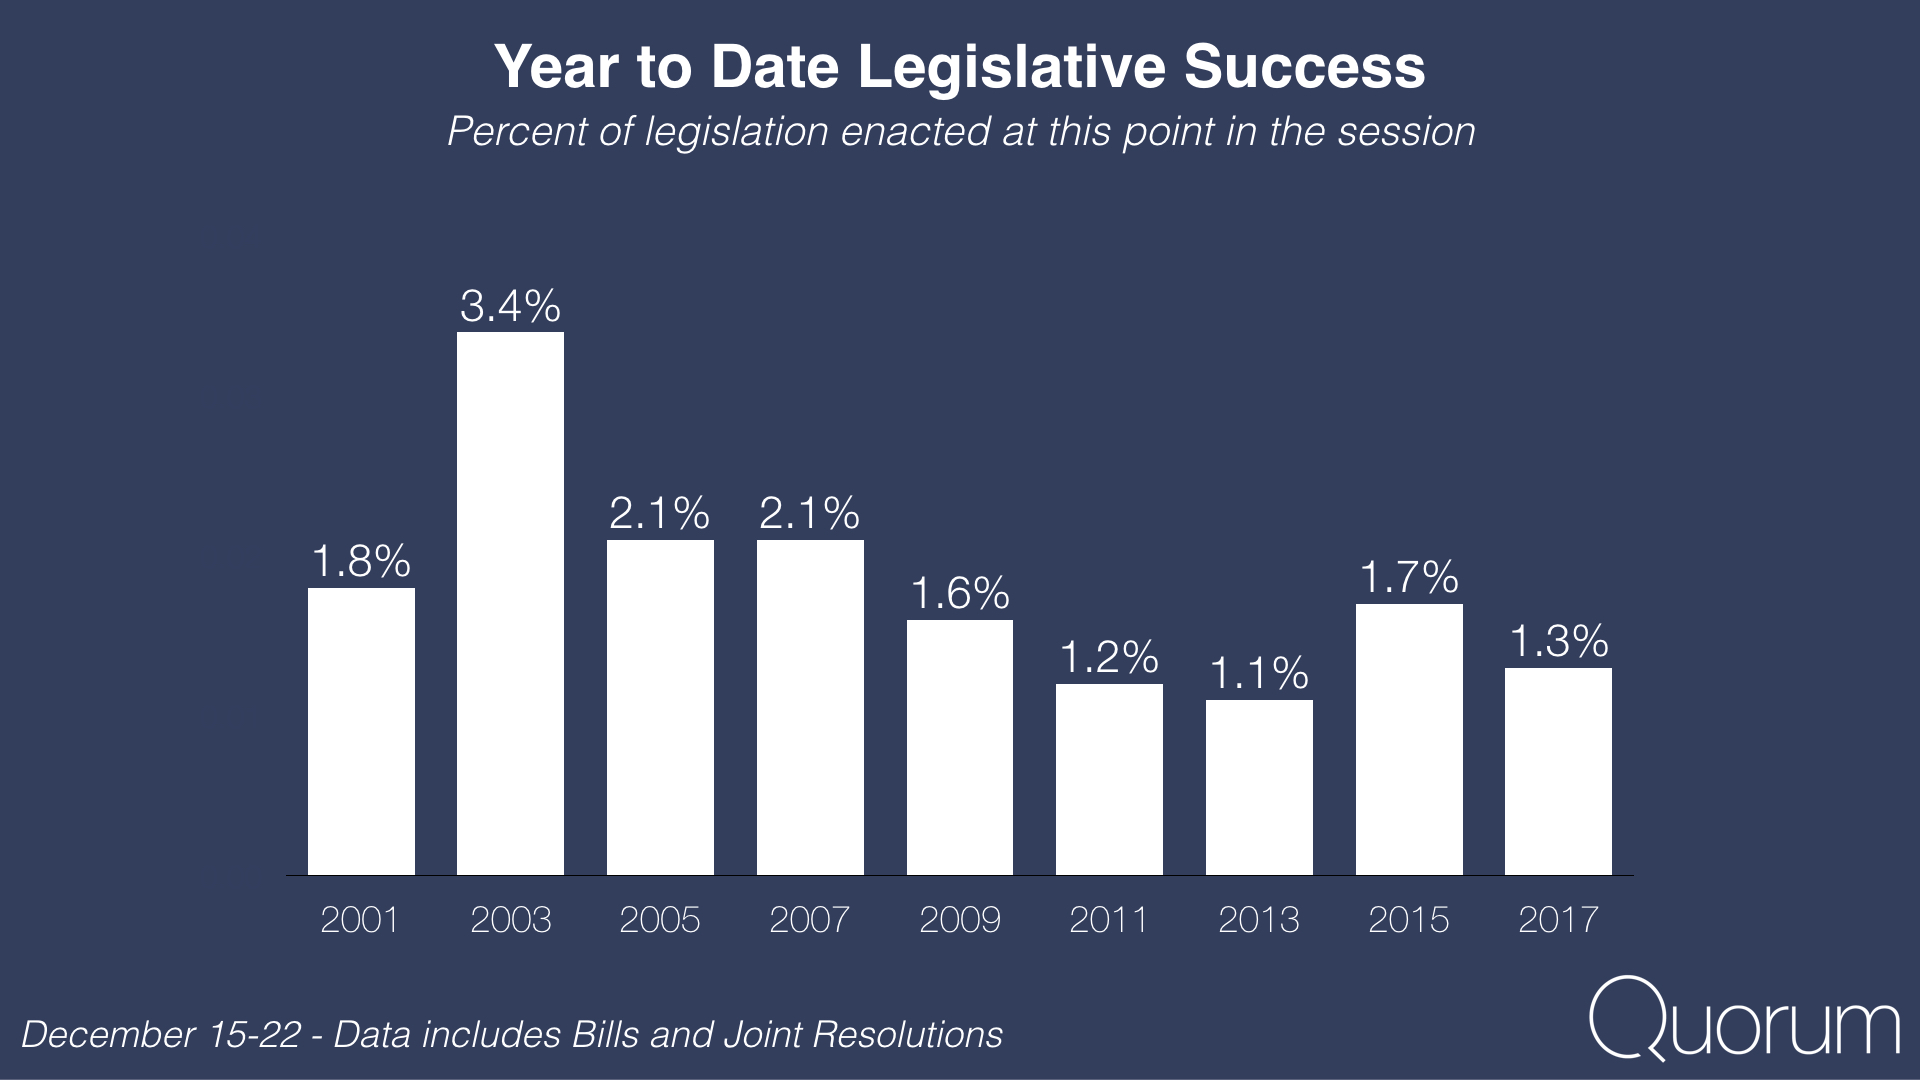 Year to date legislative success